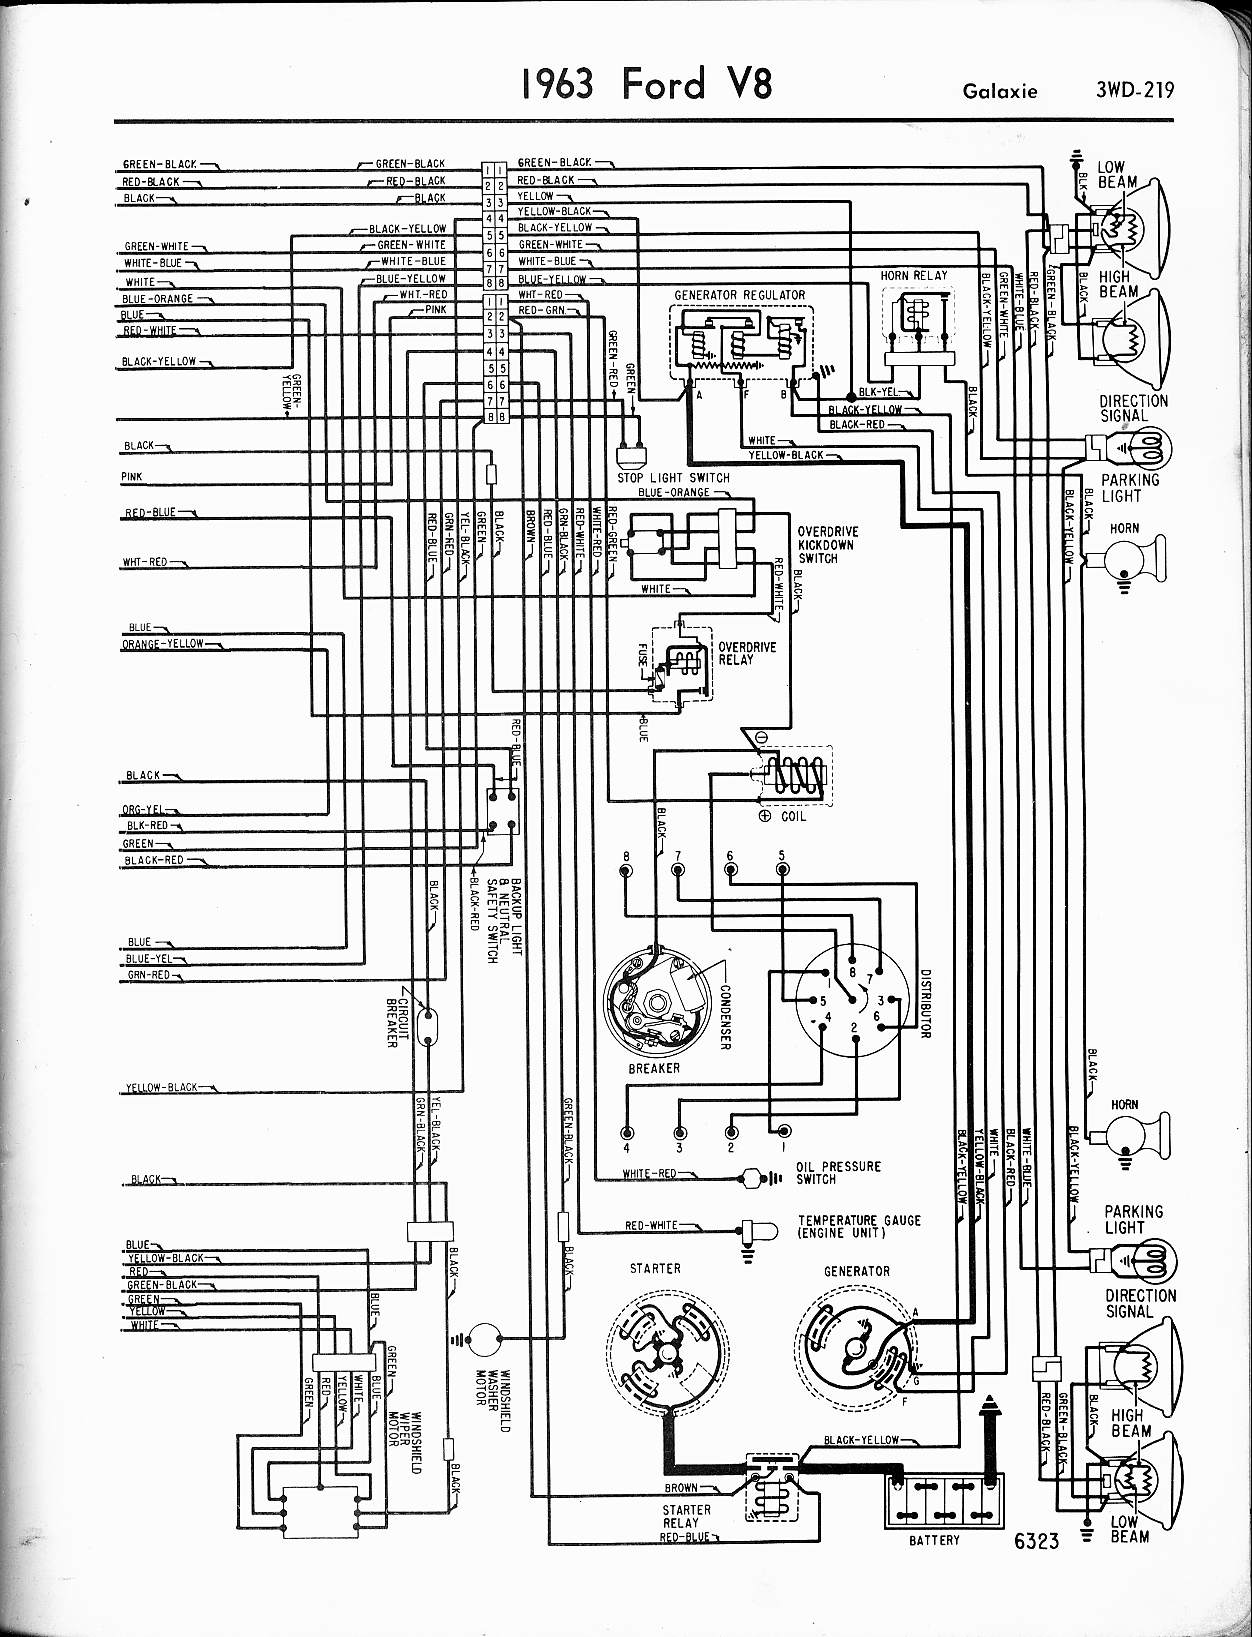 1964 Lincoln Vacuum Wiring Diagram Strategy Design 1999 Navigator Window Switch 1969 Car Diagrams 1968 Mercury Cougar Data Rh Site De Joueurs Com 1998 Schematic